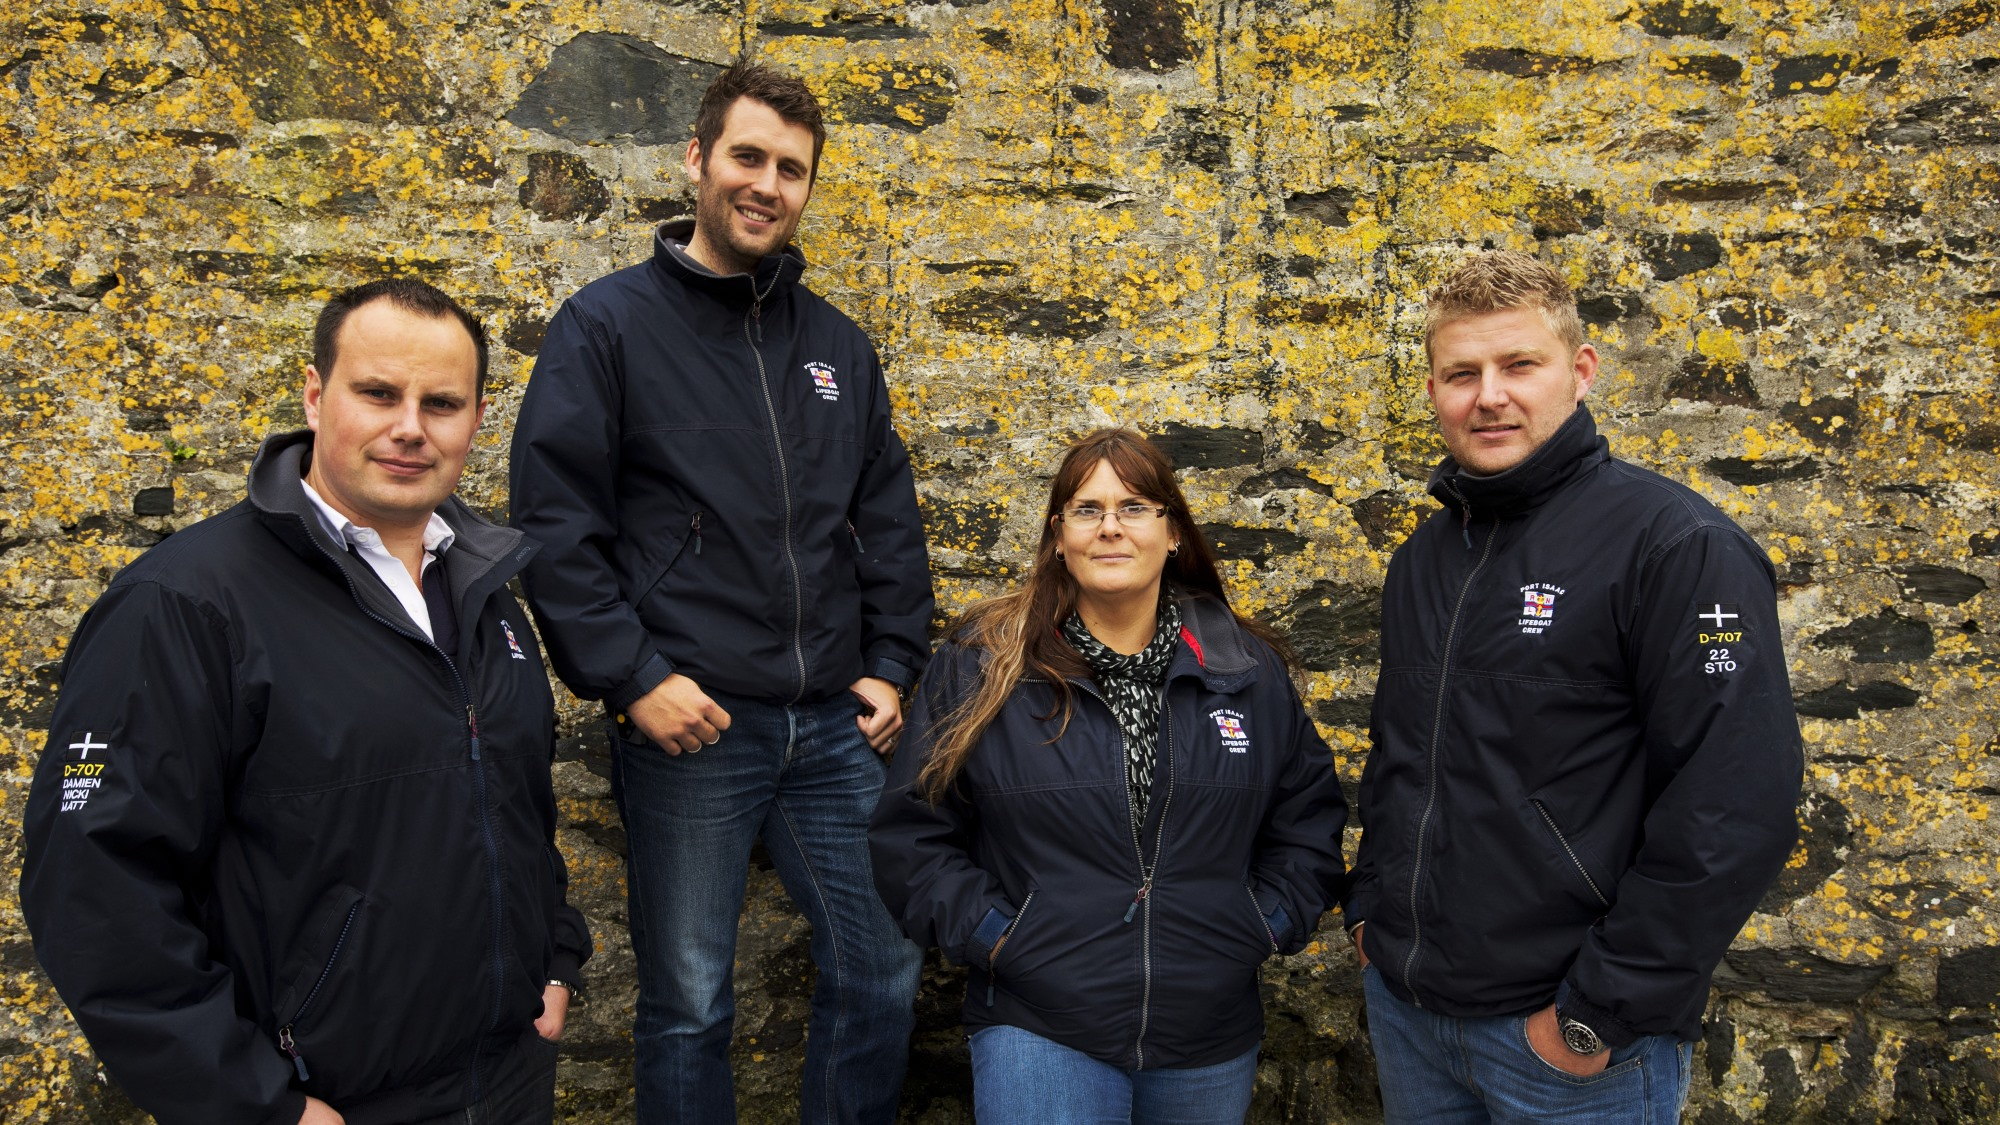 Left to right: Paul Sleeman with his rescuers – Port Isaac RNLI Crew Members Matthew Main, Nicola-Jane Bradbury and Damien Bolton.